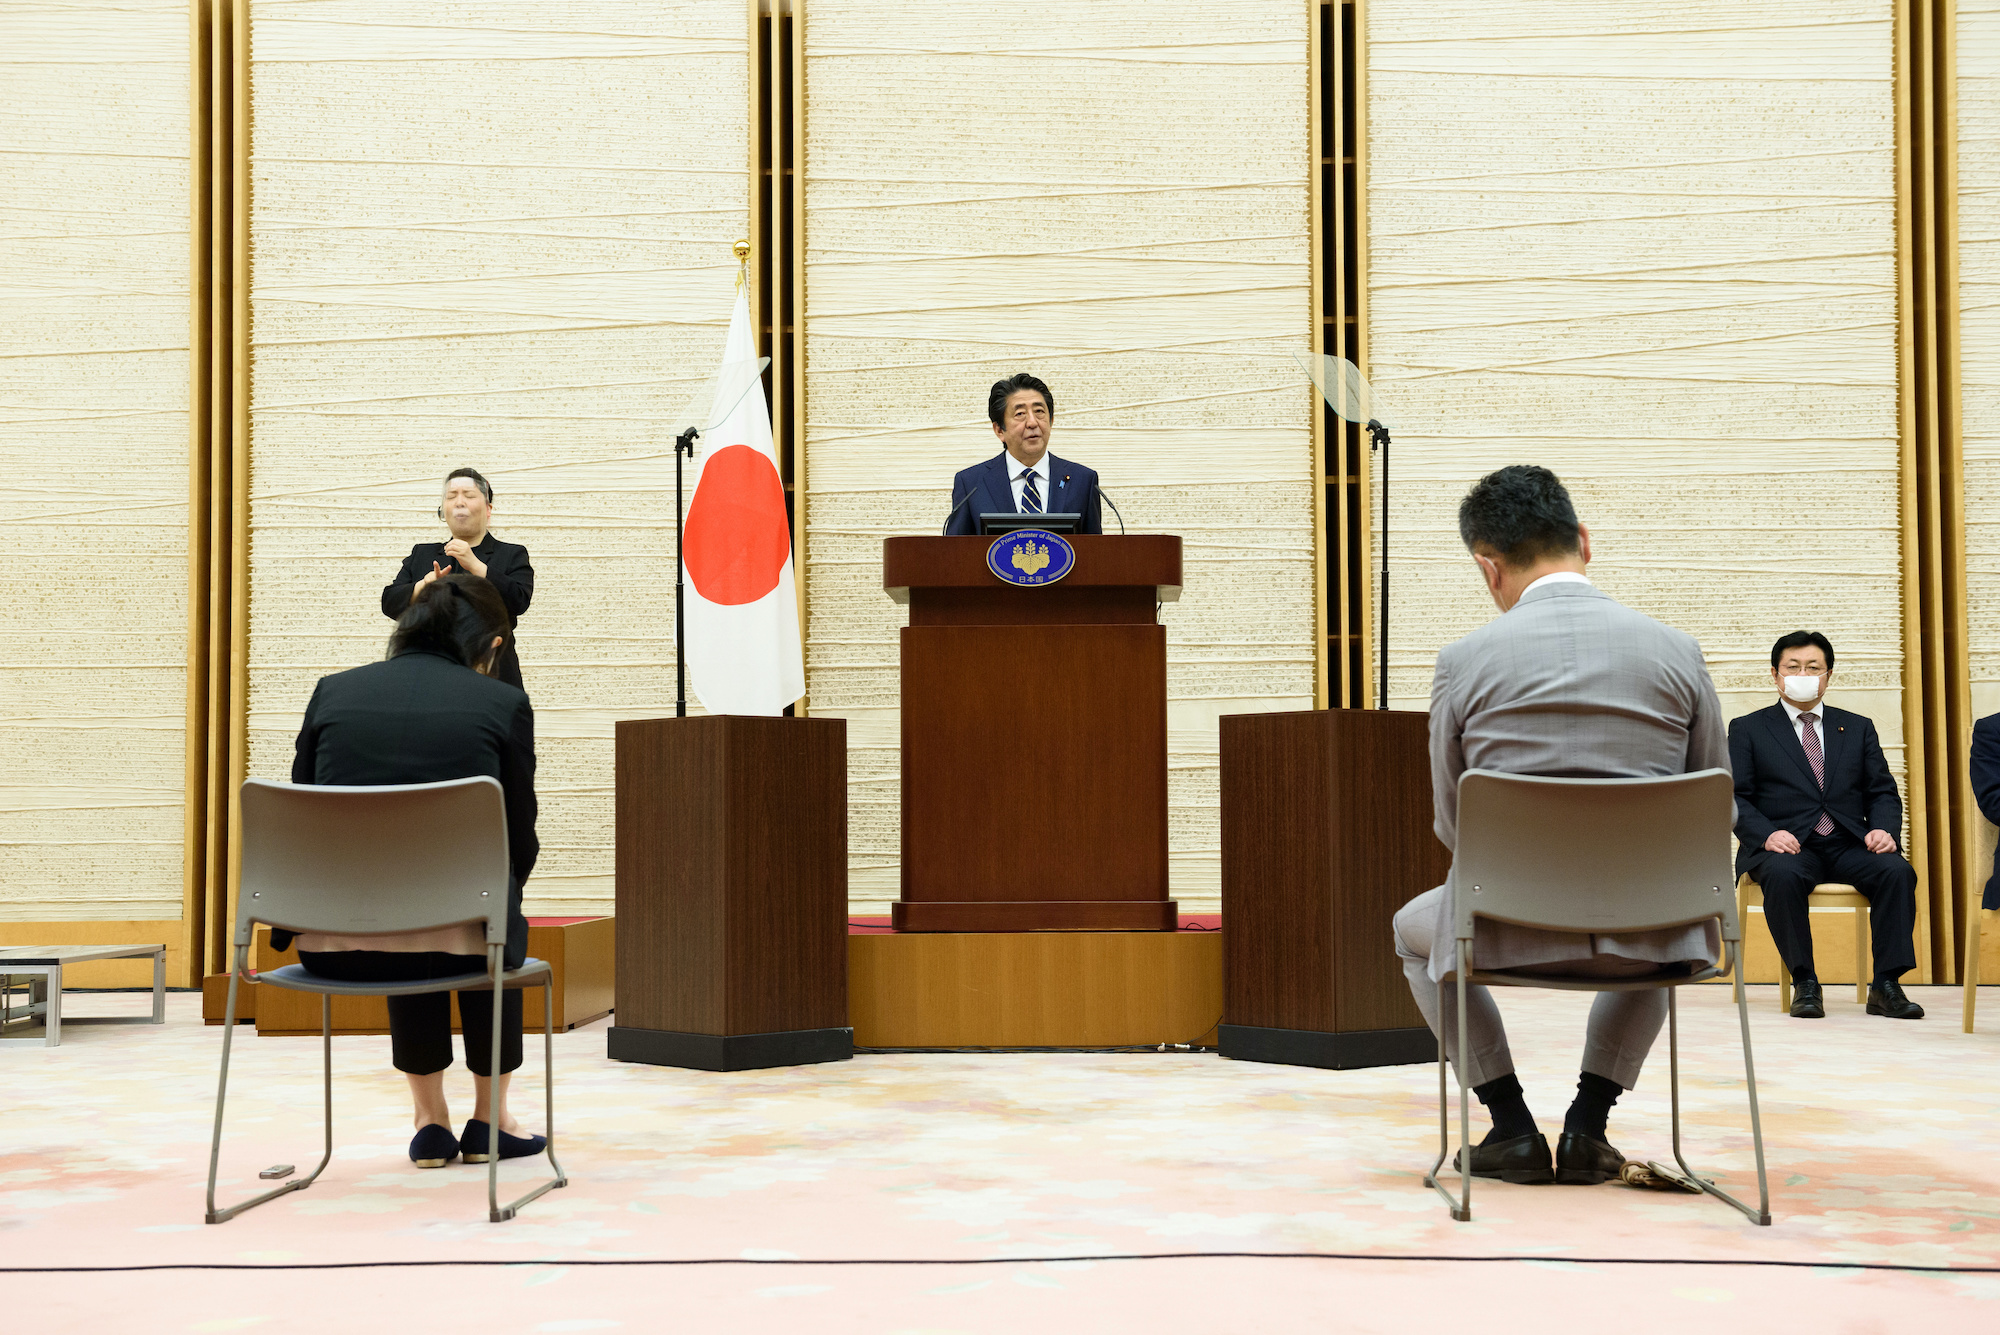 Prime Minister Shinzo Abe speaks during a news conference on May 14. | POOL PHOTO VIA REUTERS